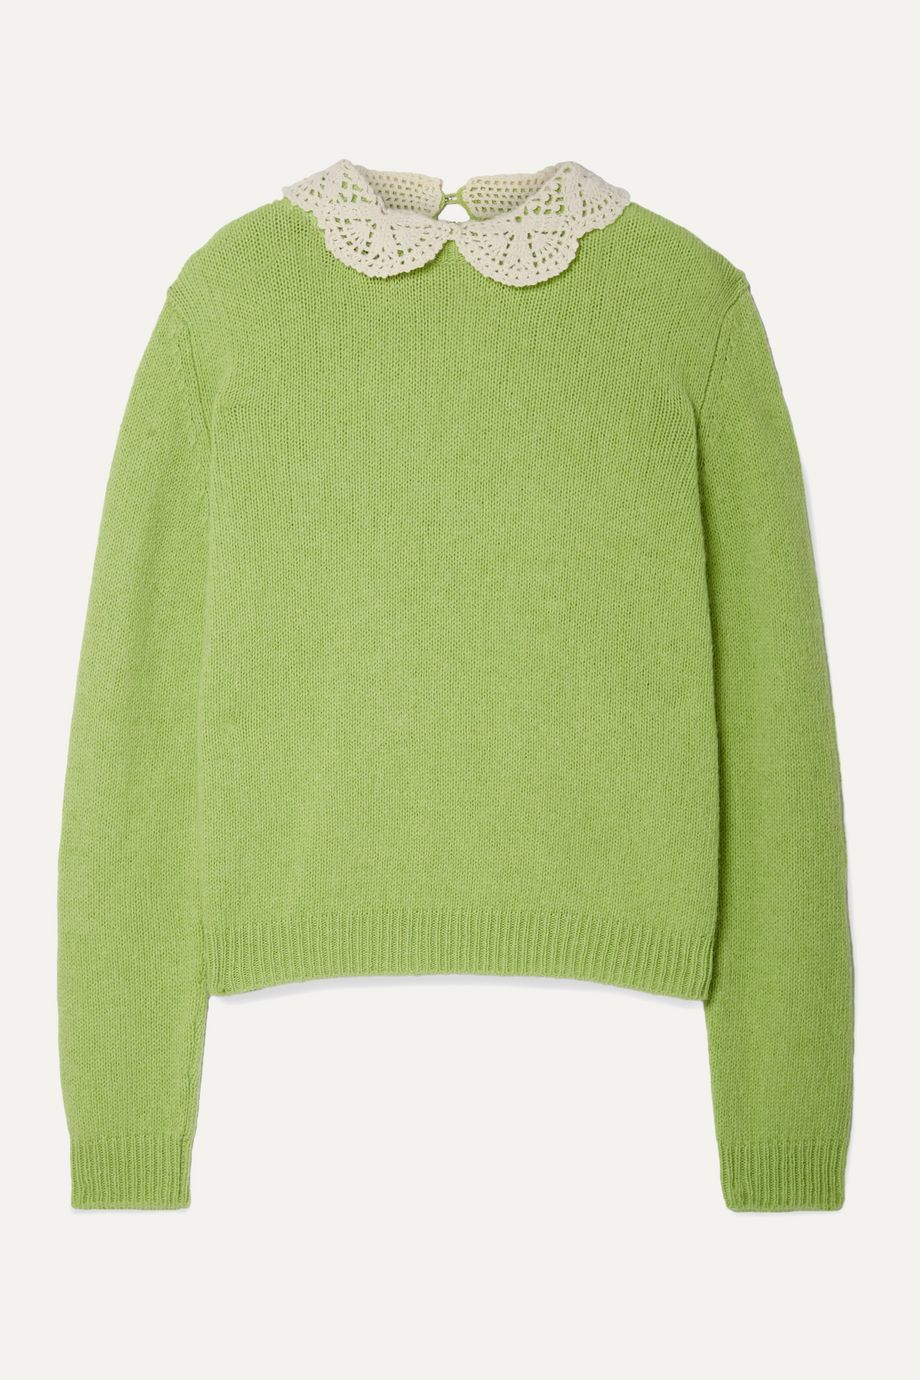 THE Marc Jacobs Crochet-trimmed wool sweater